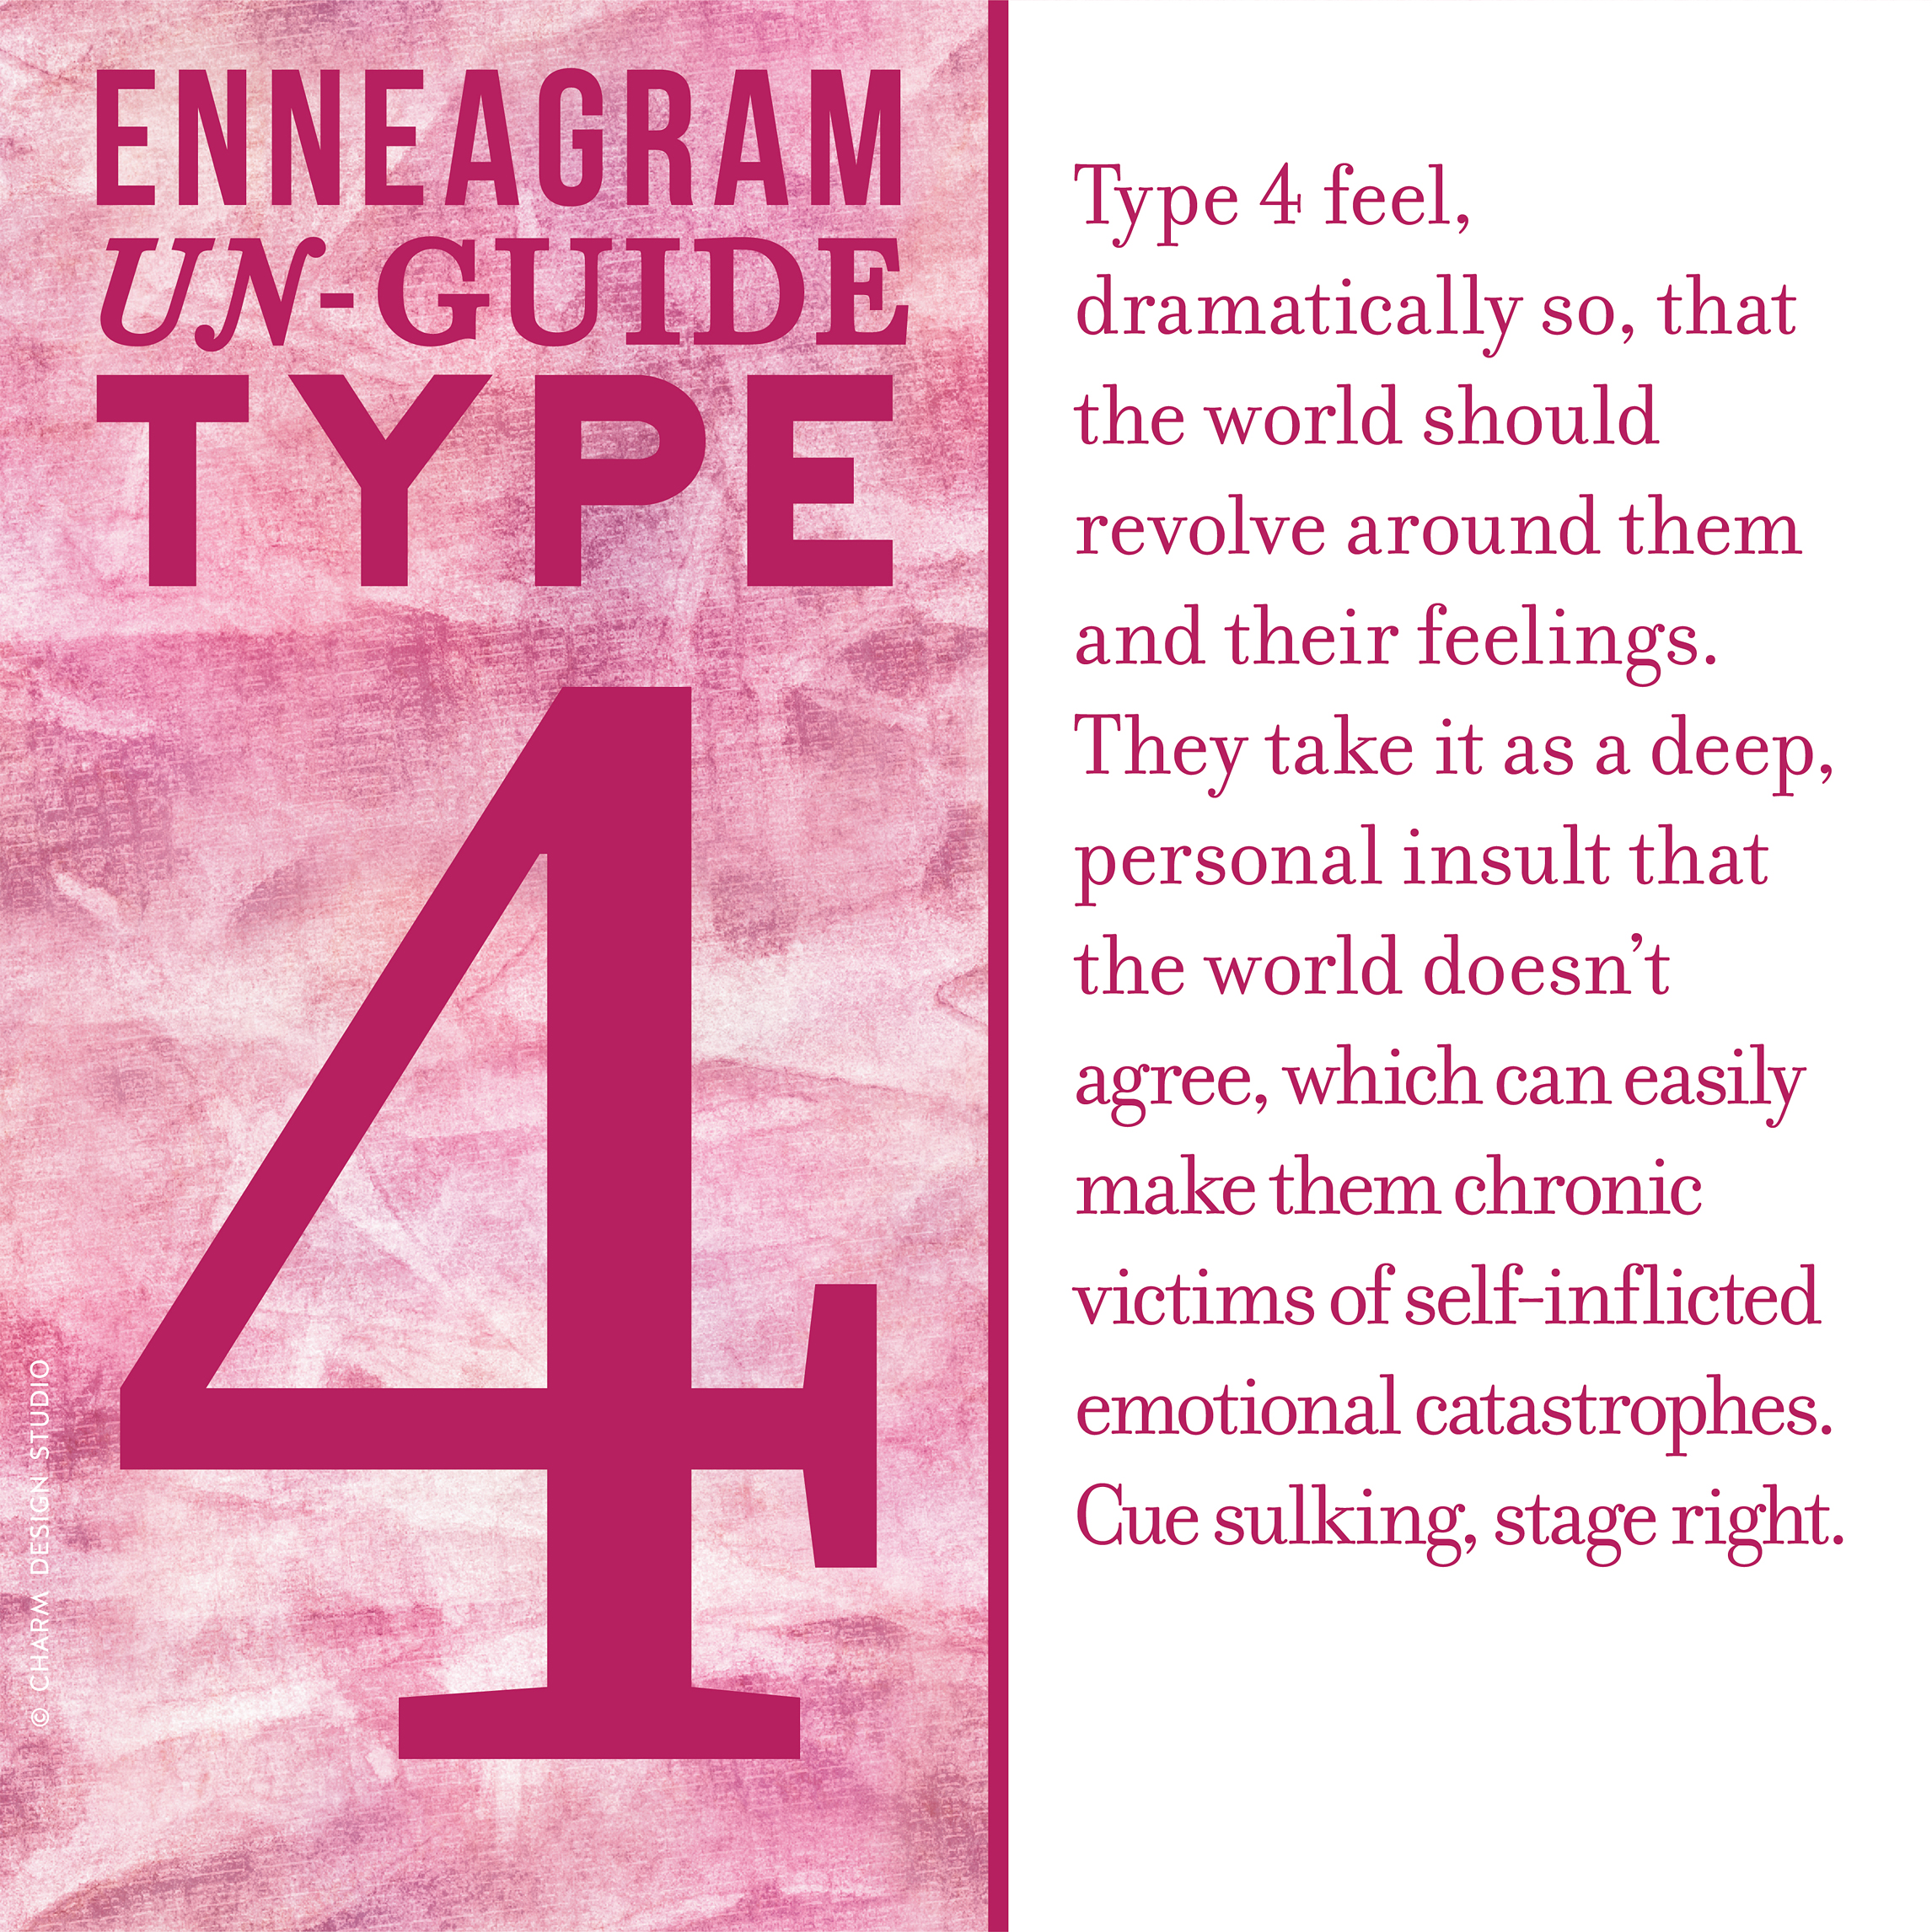 Enneagram Un-Guide: Type 4 feel, dramatically so, that the world should revolve around them and their feelings. They take it as a deep, personal insult that the world doesn't agree, which can easily make them chronic victims of self-inflicted emotional catastrophes. Cue sulking, stage right. / Design and words © Charm Design Studio